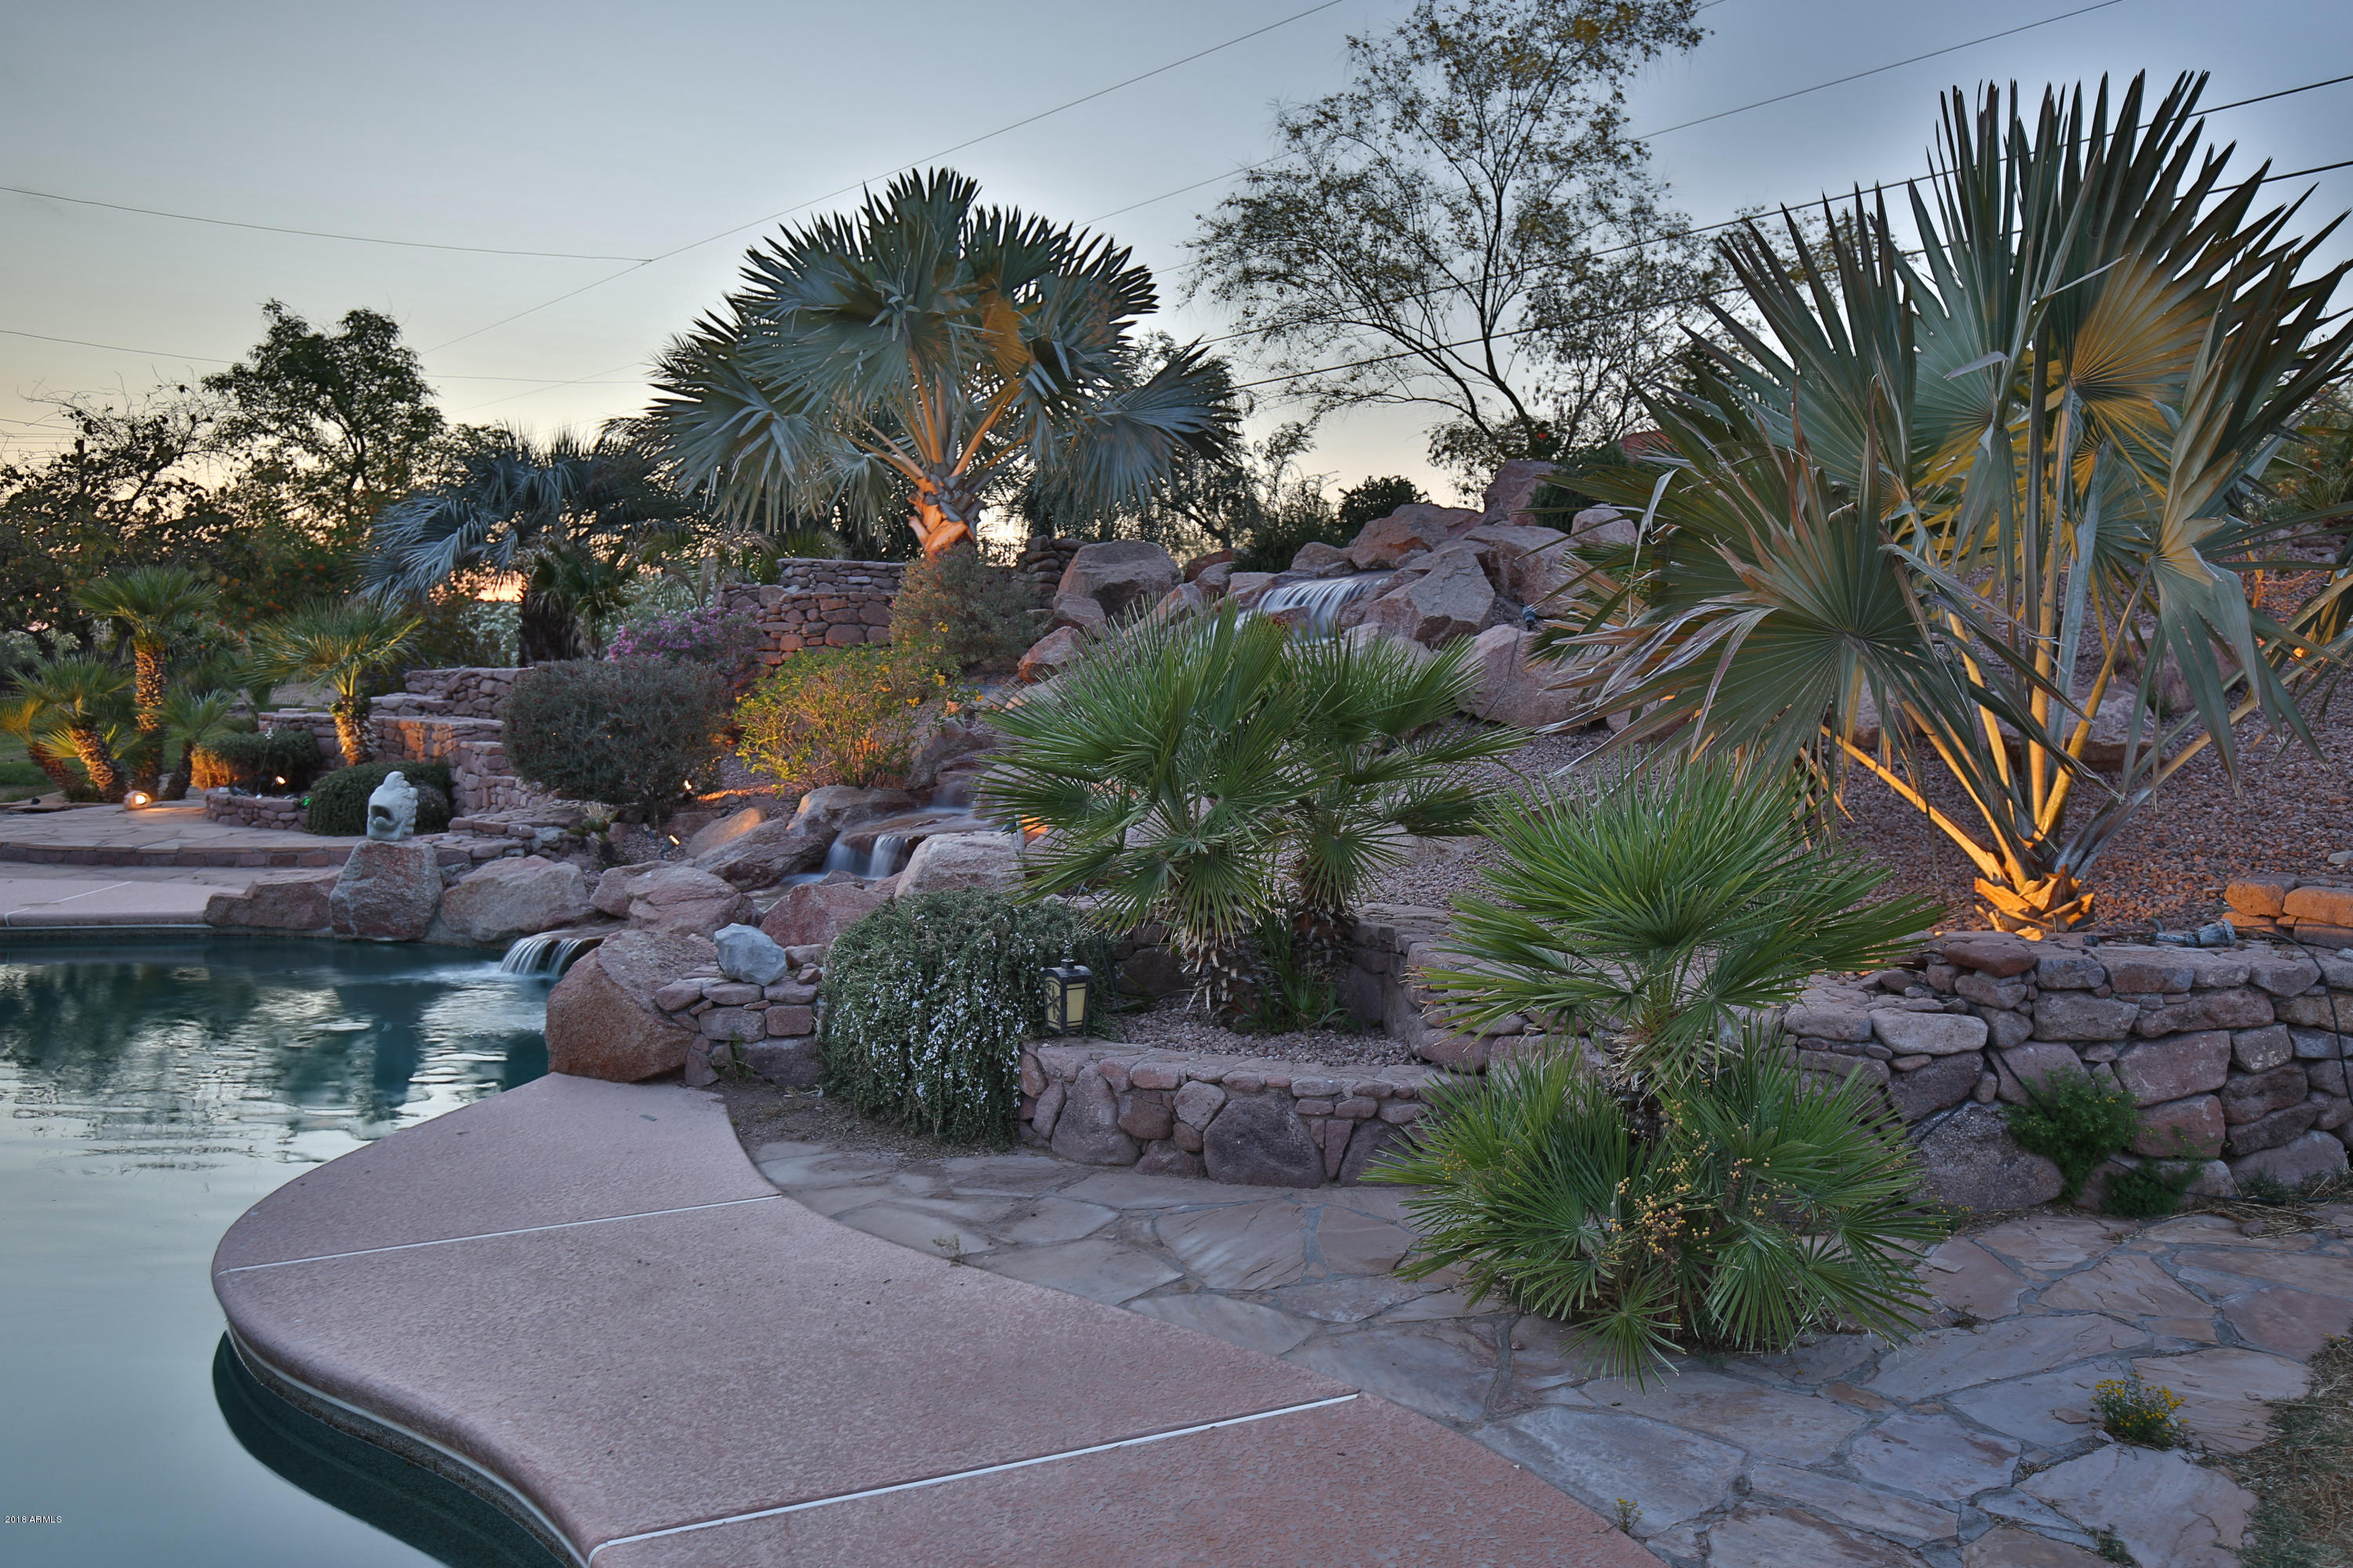 MLS 5761815 1091 S GERONIMO Road, Apache Junction, AZ 85119 Apache Junction AZ Eco-Friendly